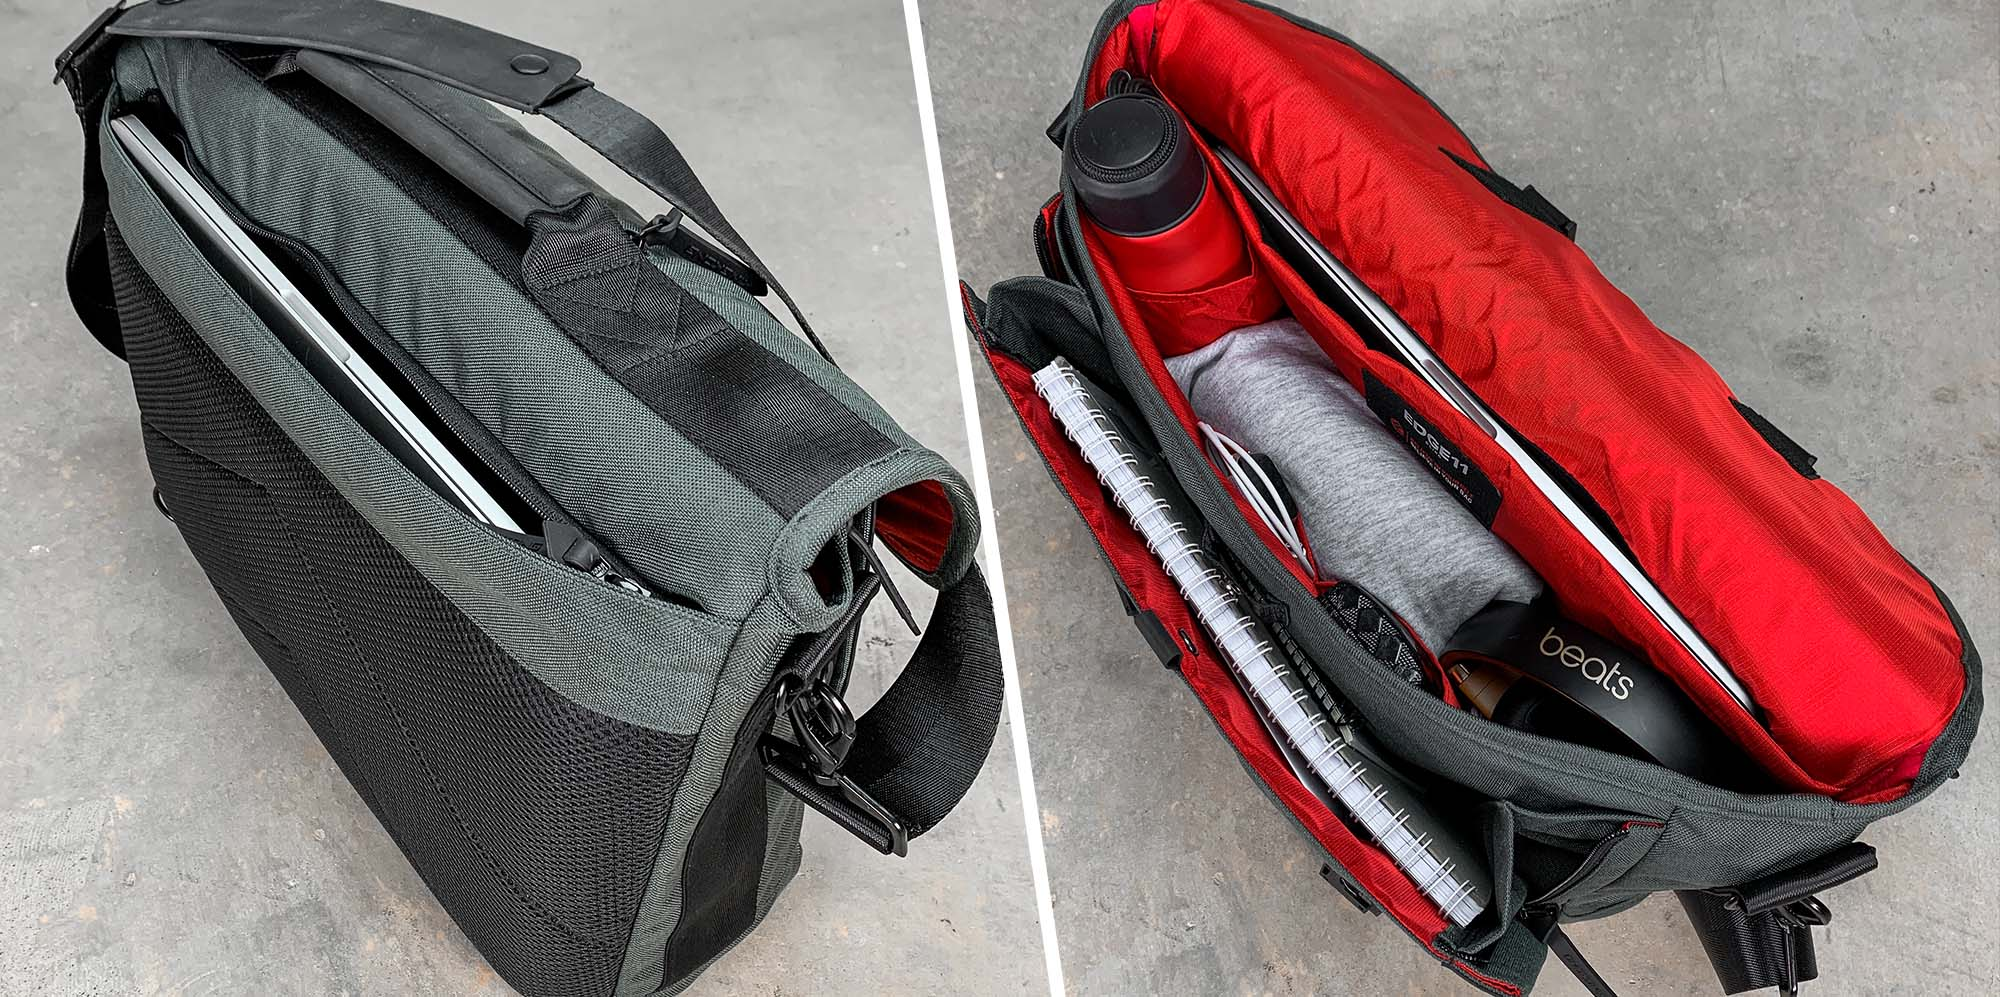 Laptop bag for gym and work